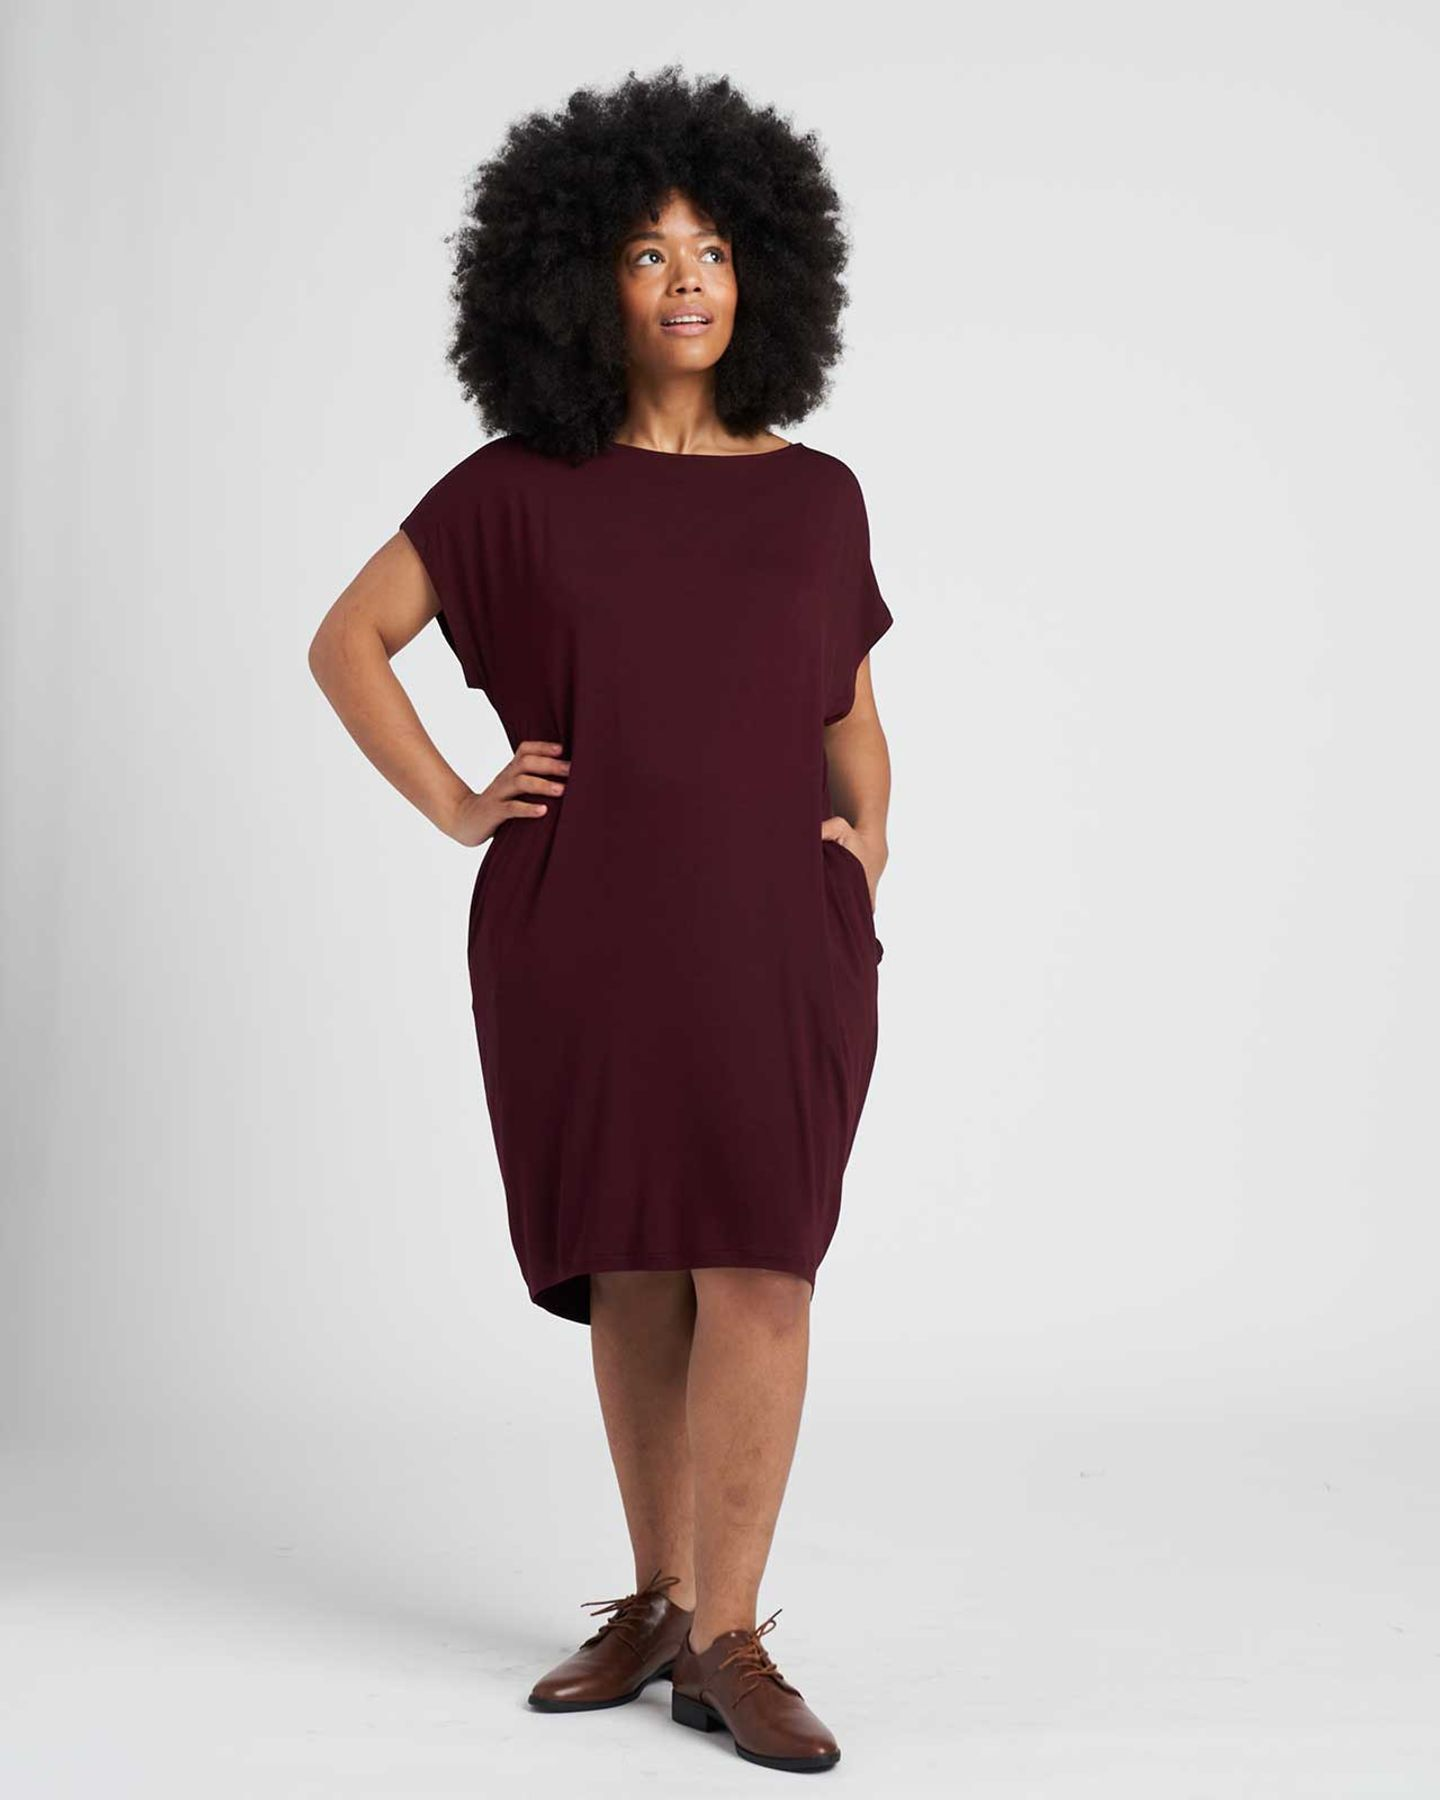 Helen Liquid Jersey Shift Dress - Black Cherry - image 0